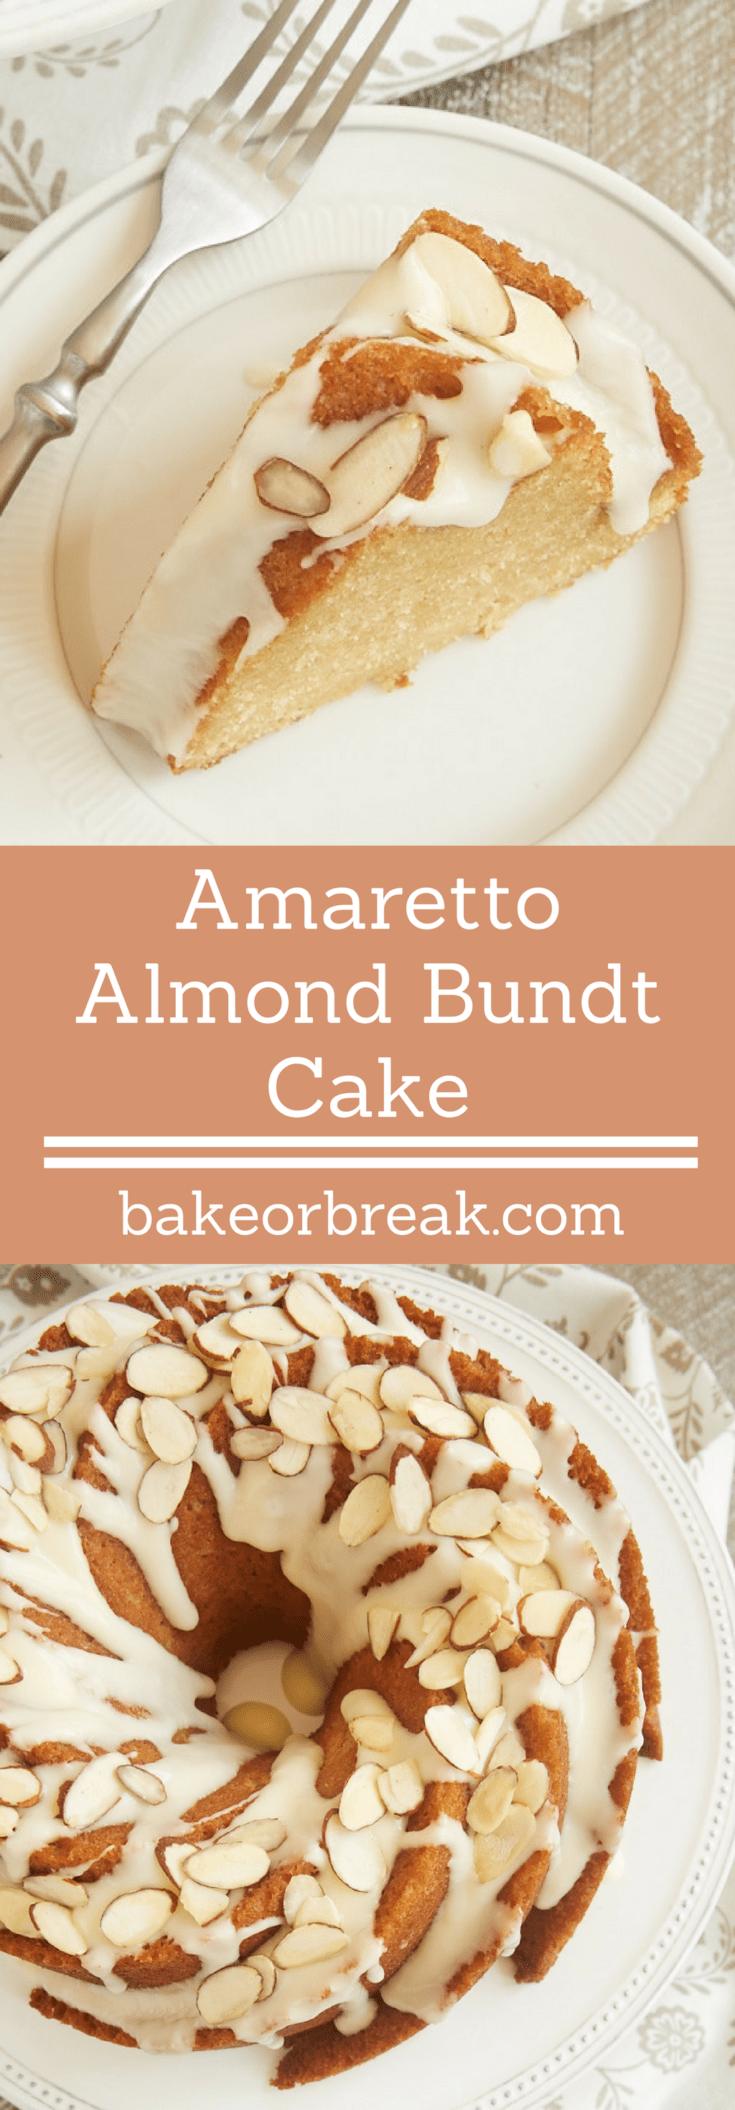 If you love almonds in a big way, you must try this fantastic Amaretto Almond Bundt Cake. Such a lovely, delicious cake! - Bake or Break #cake #bundtcake #almonds #amaretto